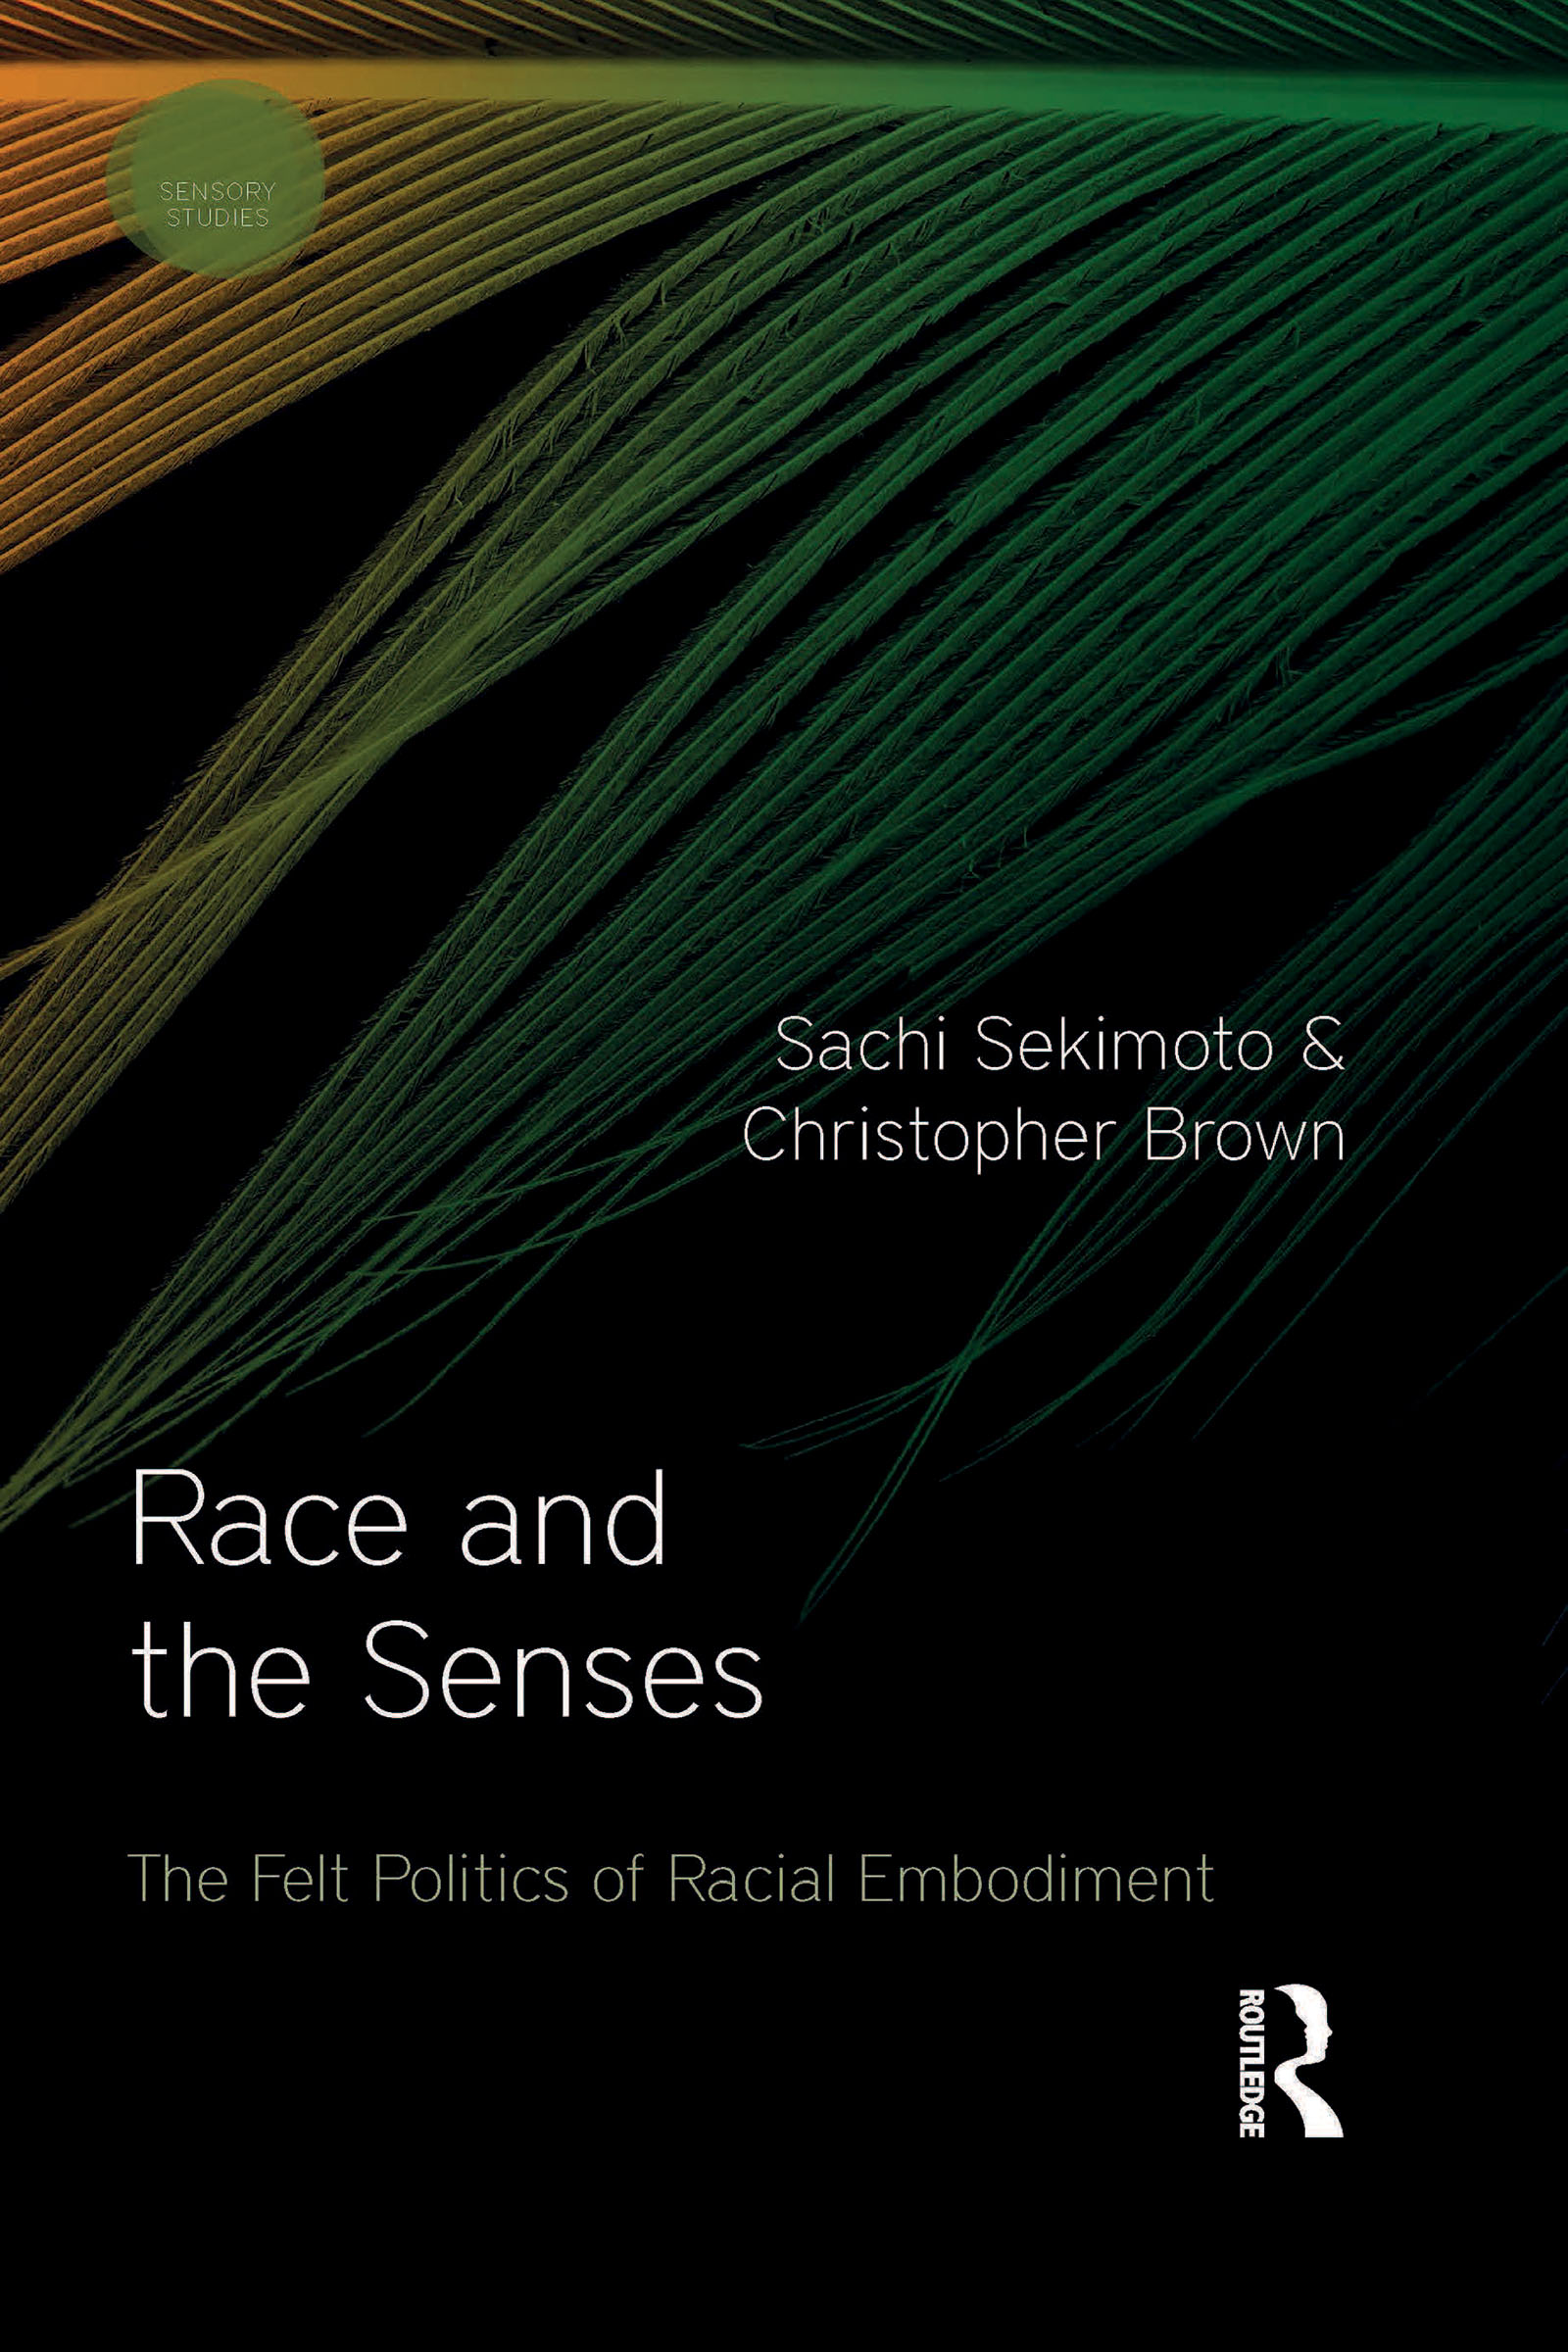 Race and the Senses